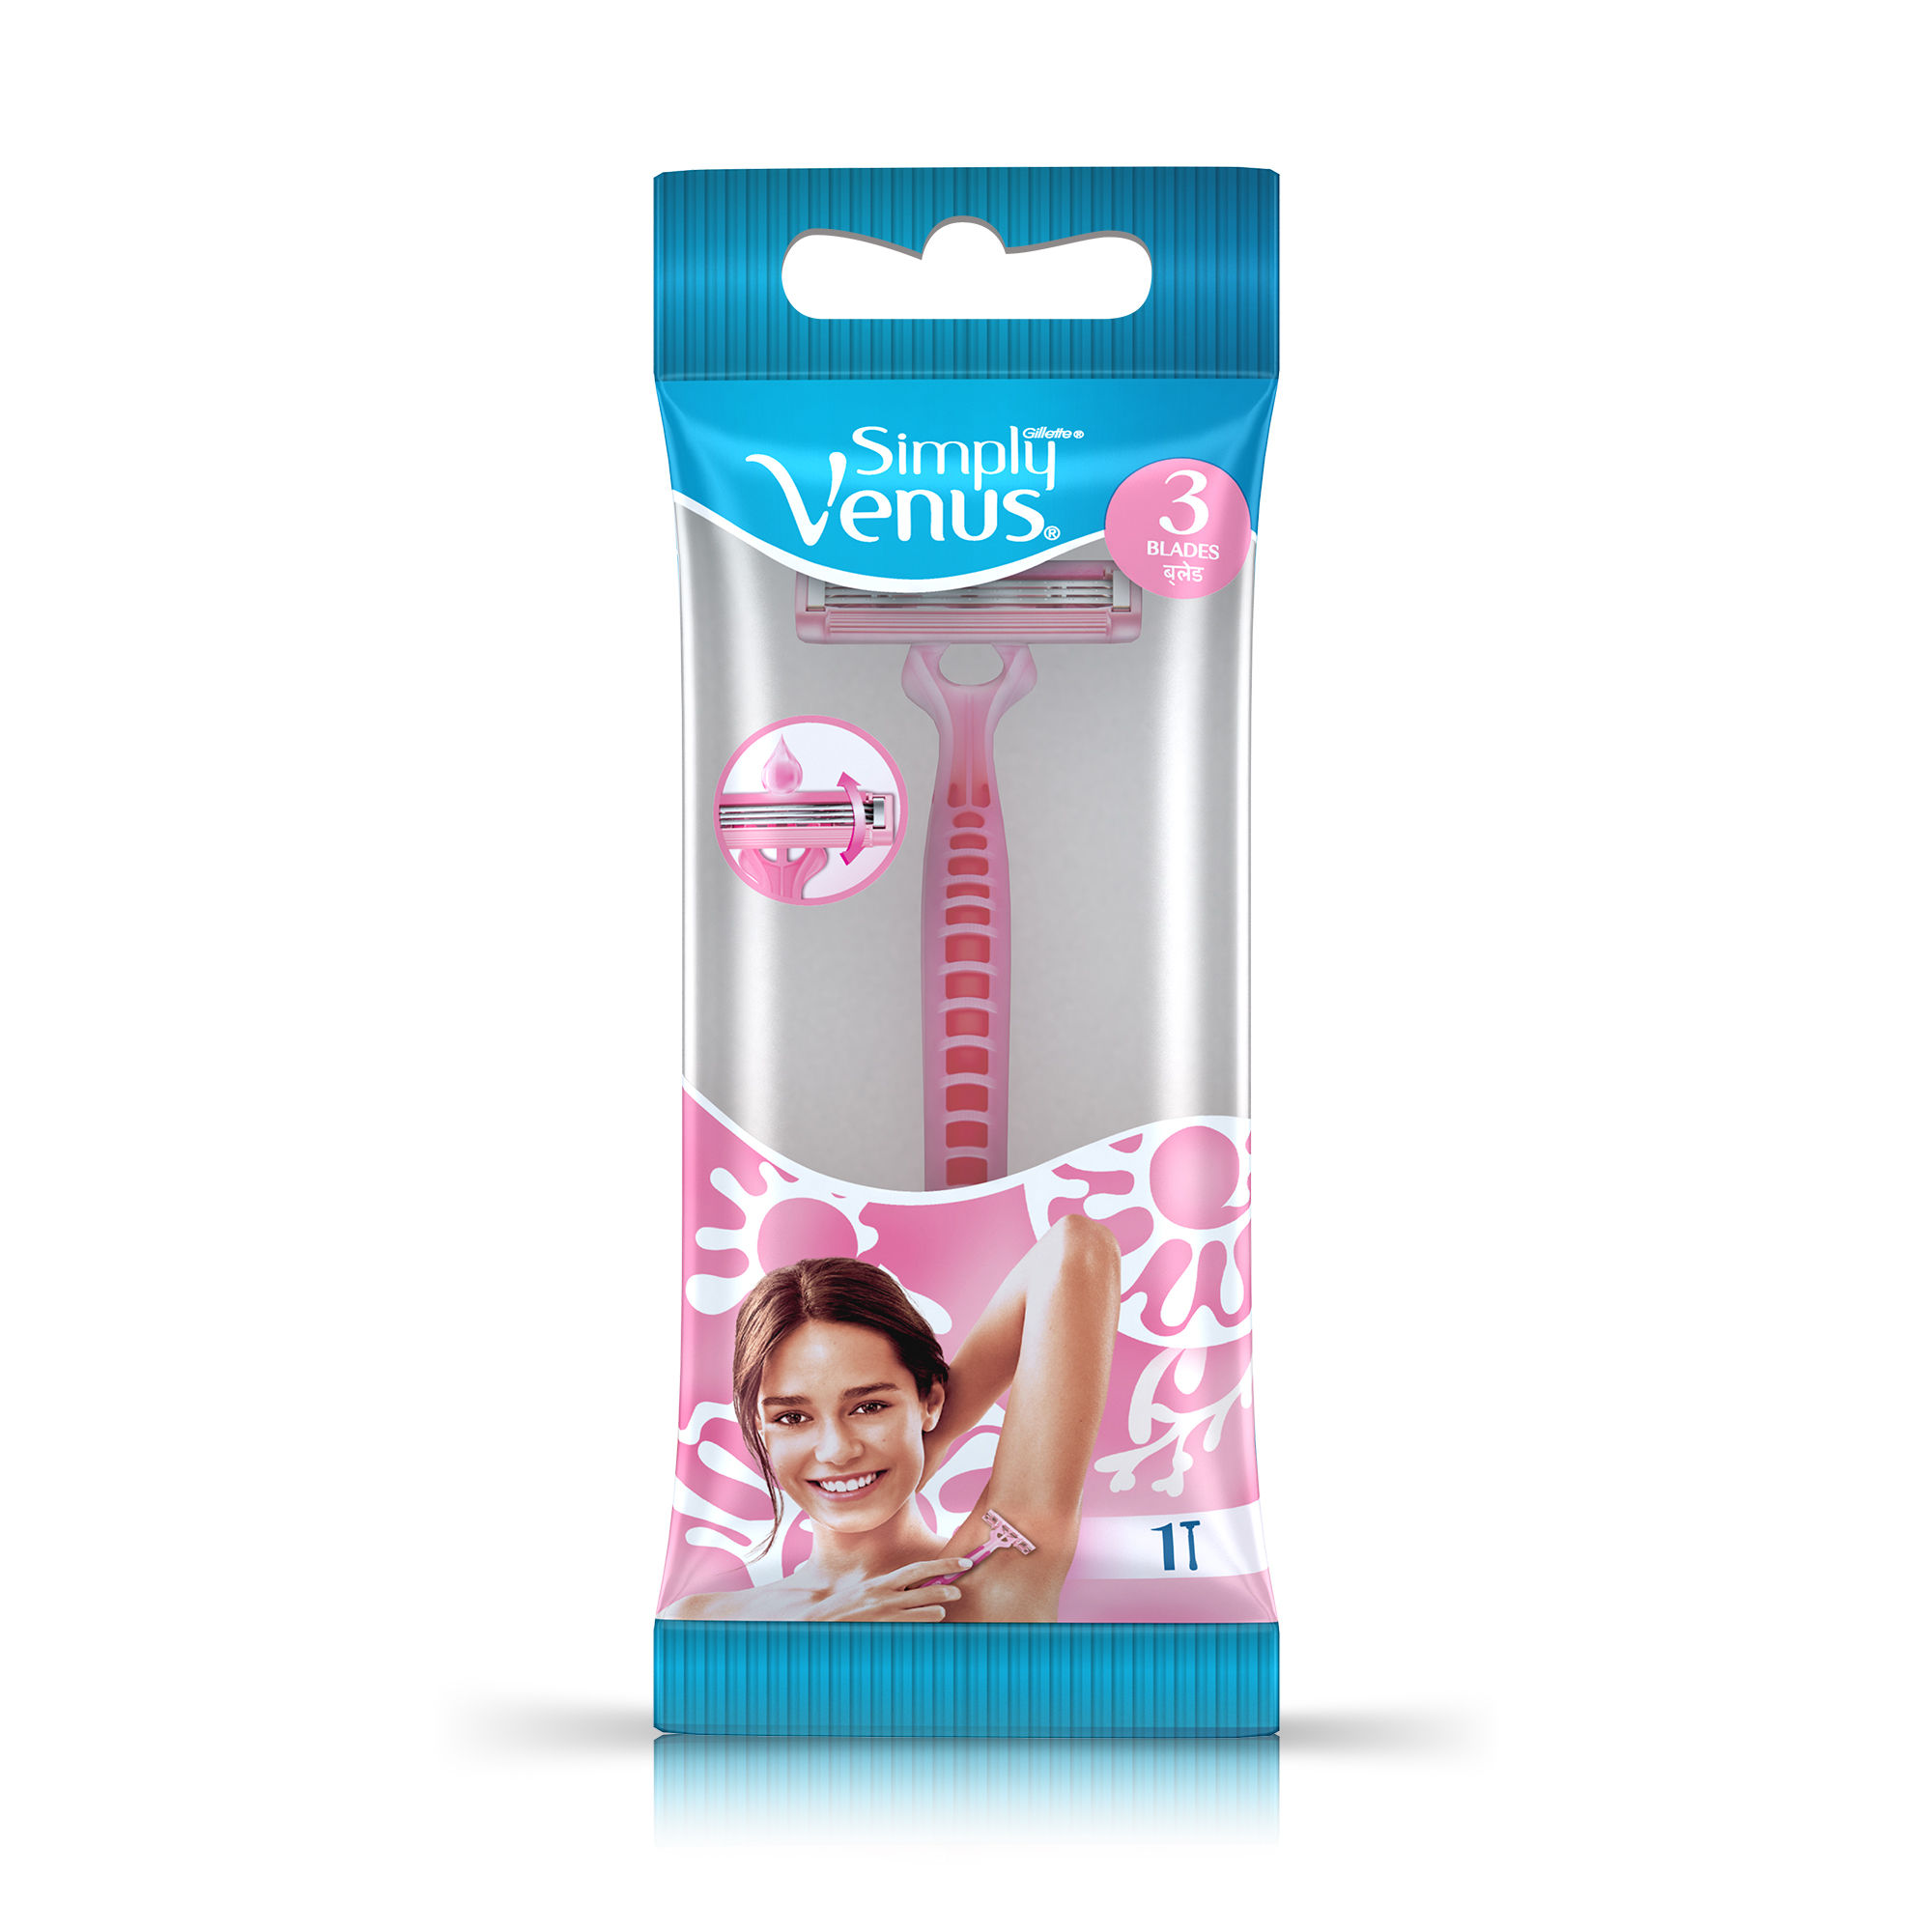 Gillette Venus 3 Simply Razor For Women Buy Gillette Venus 3 Simply Razor For Women Online At Best Price In India Nykaa